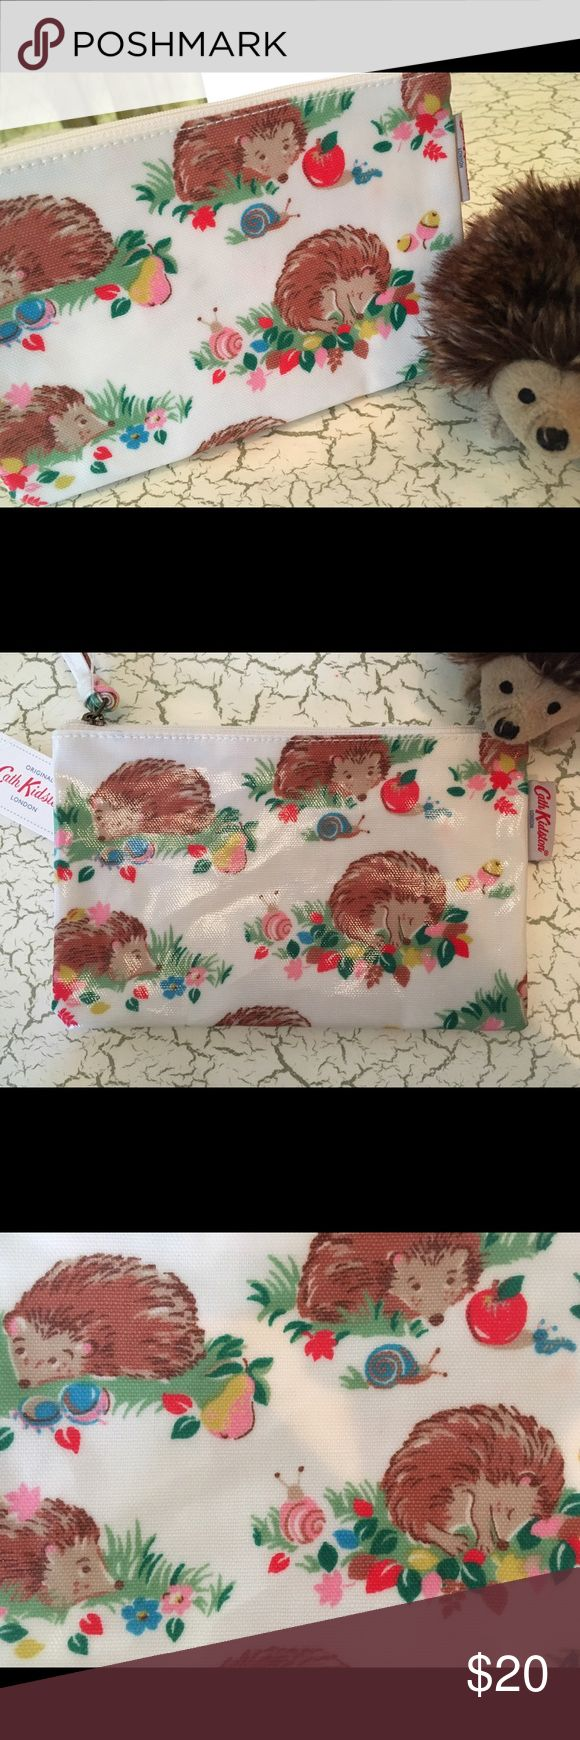 """Cath Kidston Hedgehogs Zip Purse New with tags, this is a precious Cath Kidston Hedgehogs Zip Purse. Another crazy-cute piece by UK designer Cath Kidston, known for whimsical prints. Hedgehogs are curled up napping and just hanging out being adorable. Sweet details such as snails, inchworms, acorns, fruit and flora. All on ivory oilcloth that is easy to wipe clean. 7.5"""" x 4.6"""" x .25"""". Use this as a small clutch purse (iPhone, cash & a lipstick or 2 will fit), pencil case, small cosmetics…"""